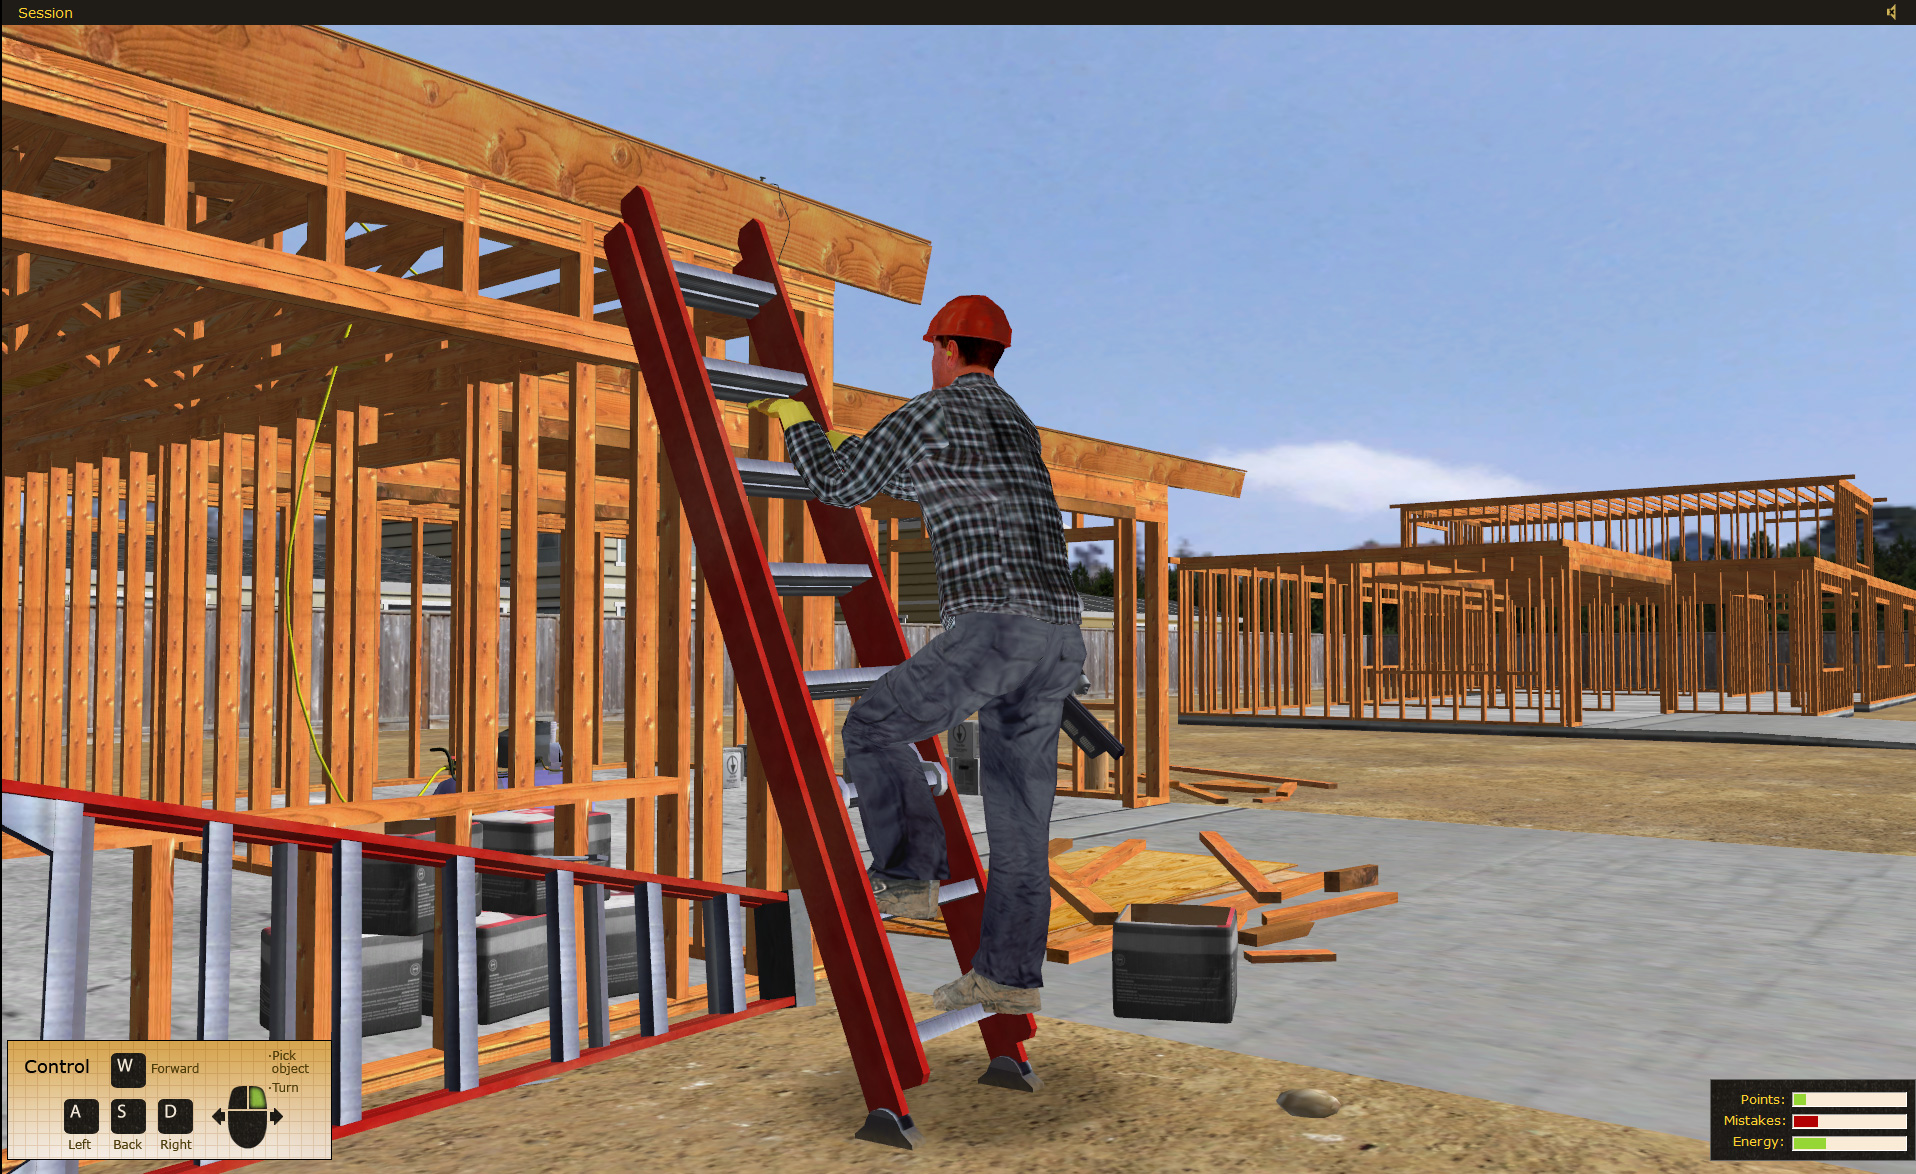 State Compensation Insurance Fund Ladder Safety Training Simulation Software